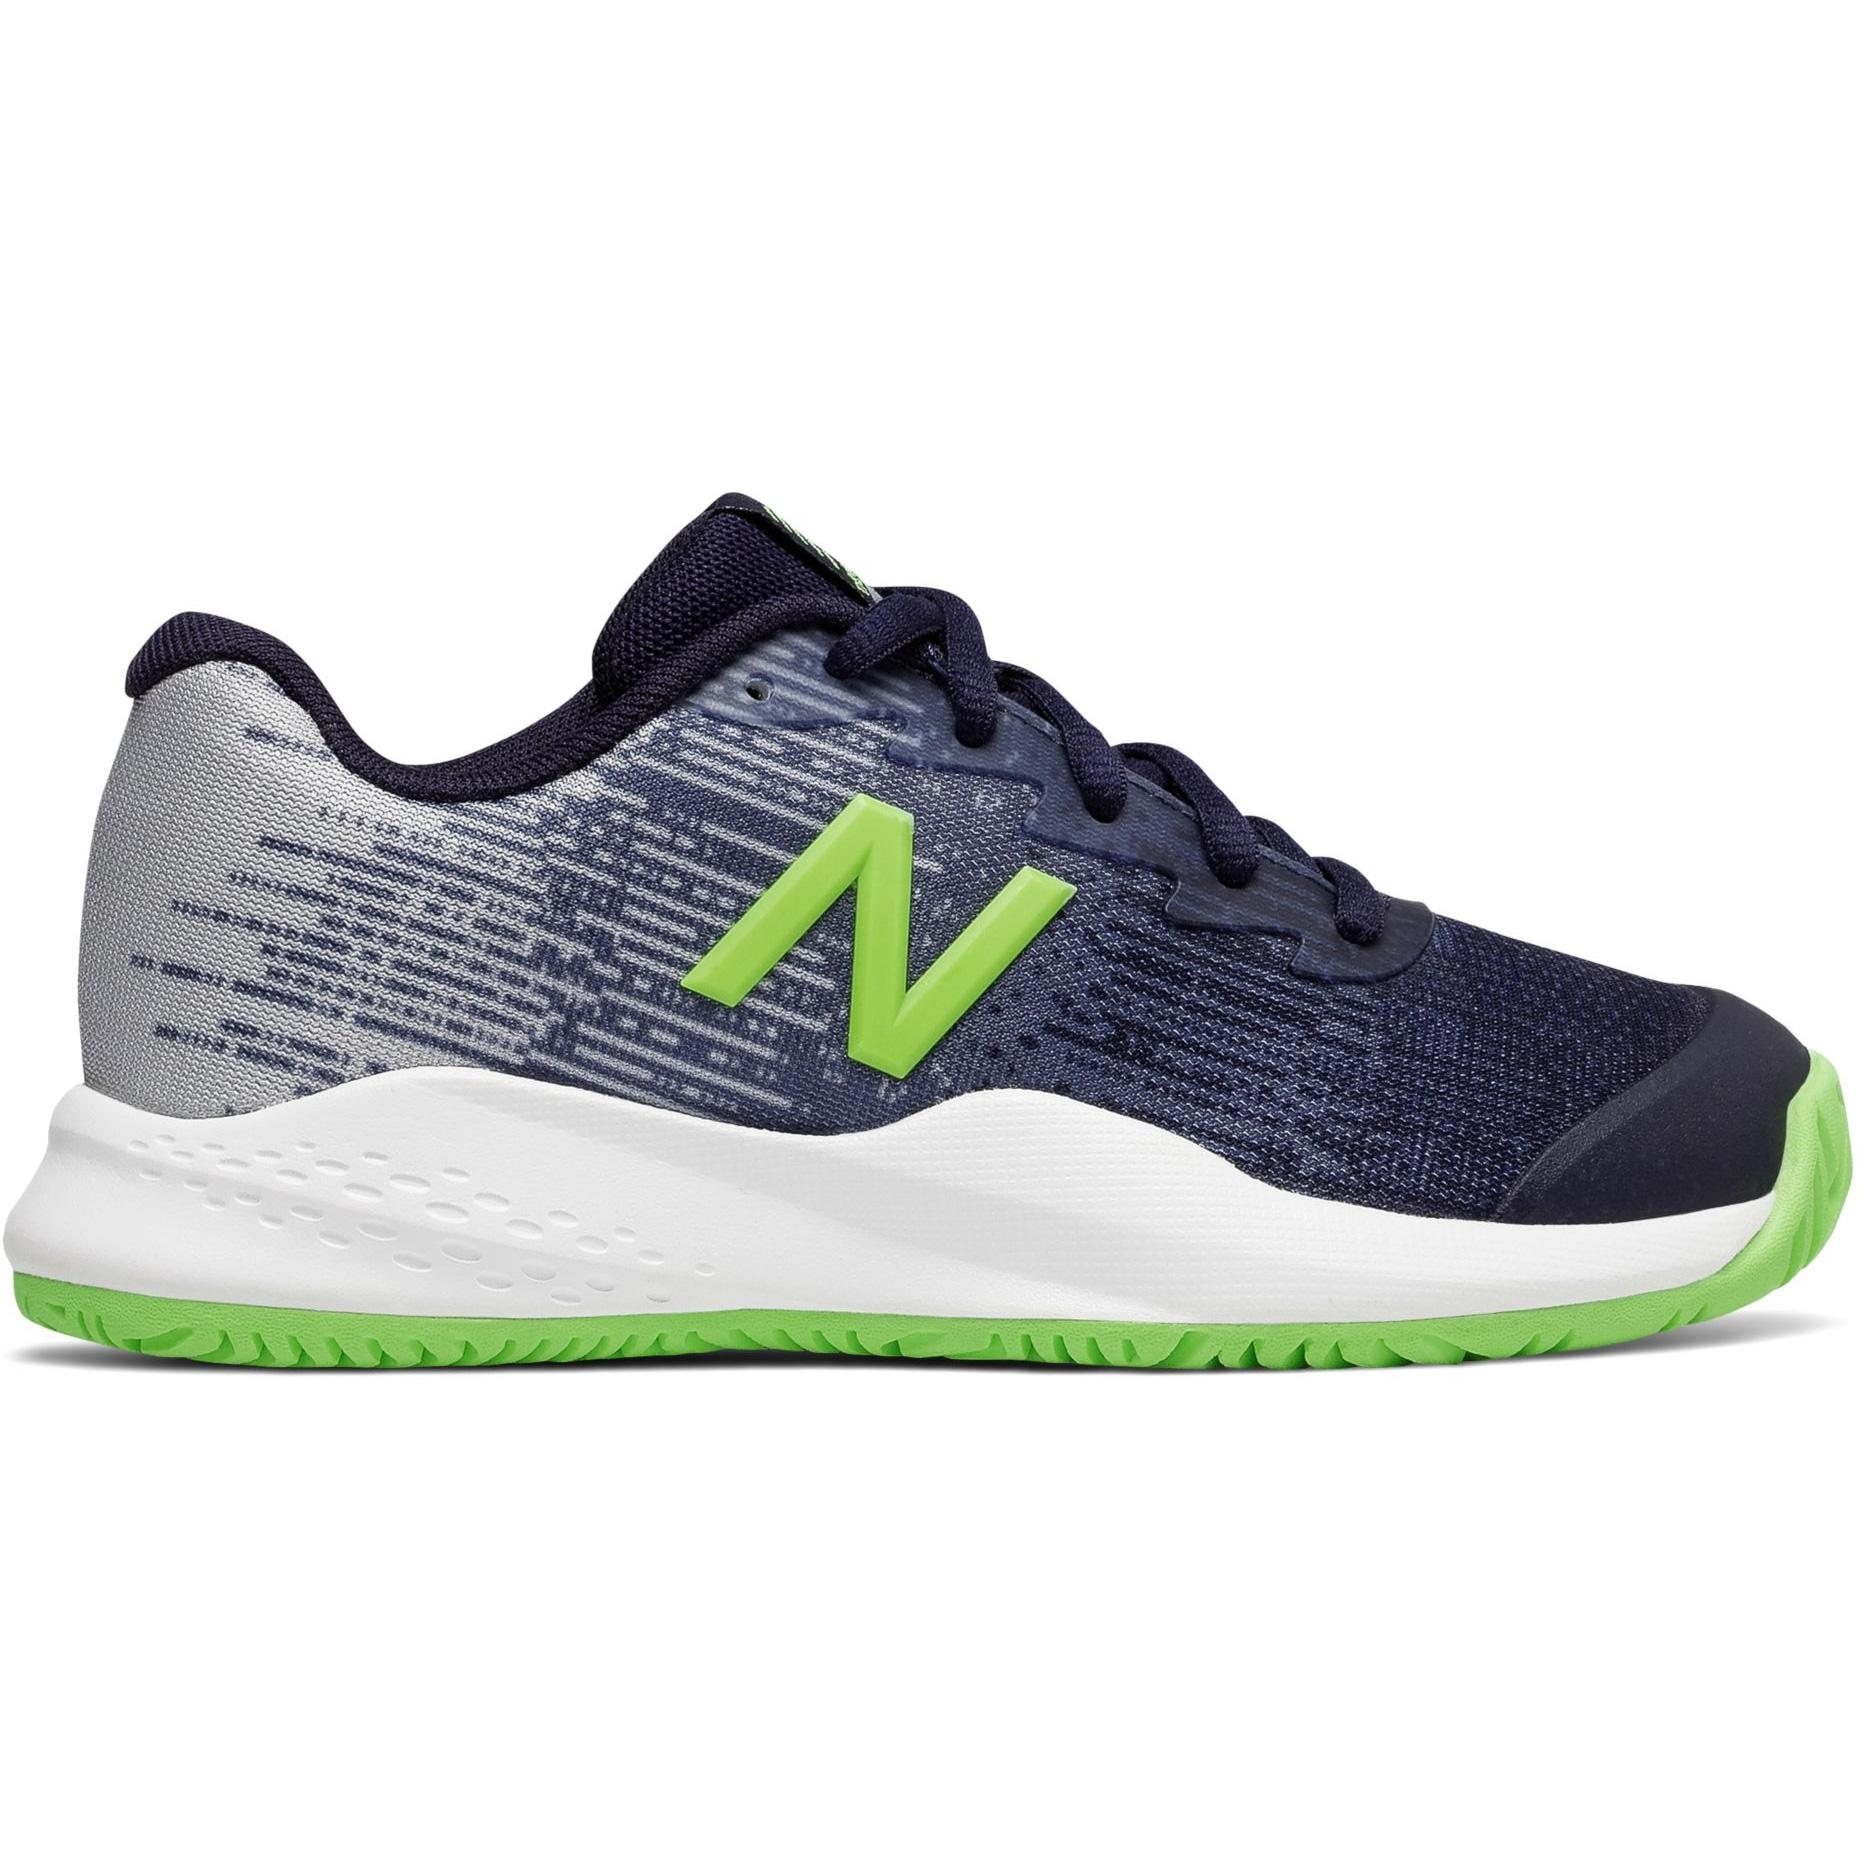 Find new balance velcro shoes at ShopStyle. Shop the latest collection of new balance velcro shoes from the most popular stores - all in one place. Kids Skip Kids Menu Go back to Beauty Menu Home Women's New Balance Athletic Shoes Ozone Shoes New Balance Sport Shoes New Balance True Balance Shoes New Balance Stride Shoes New Balance.